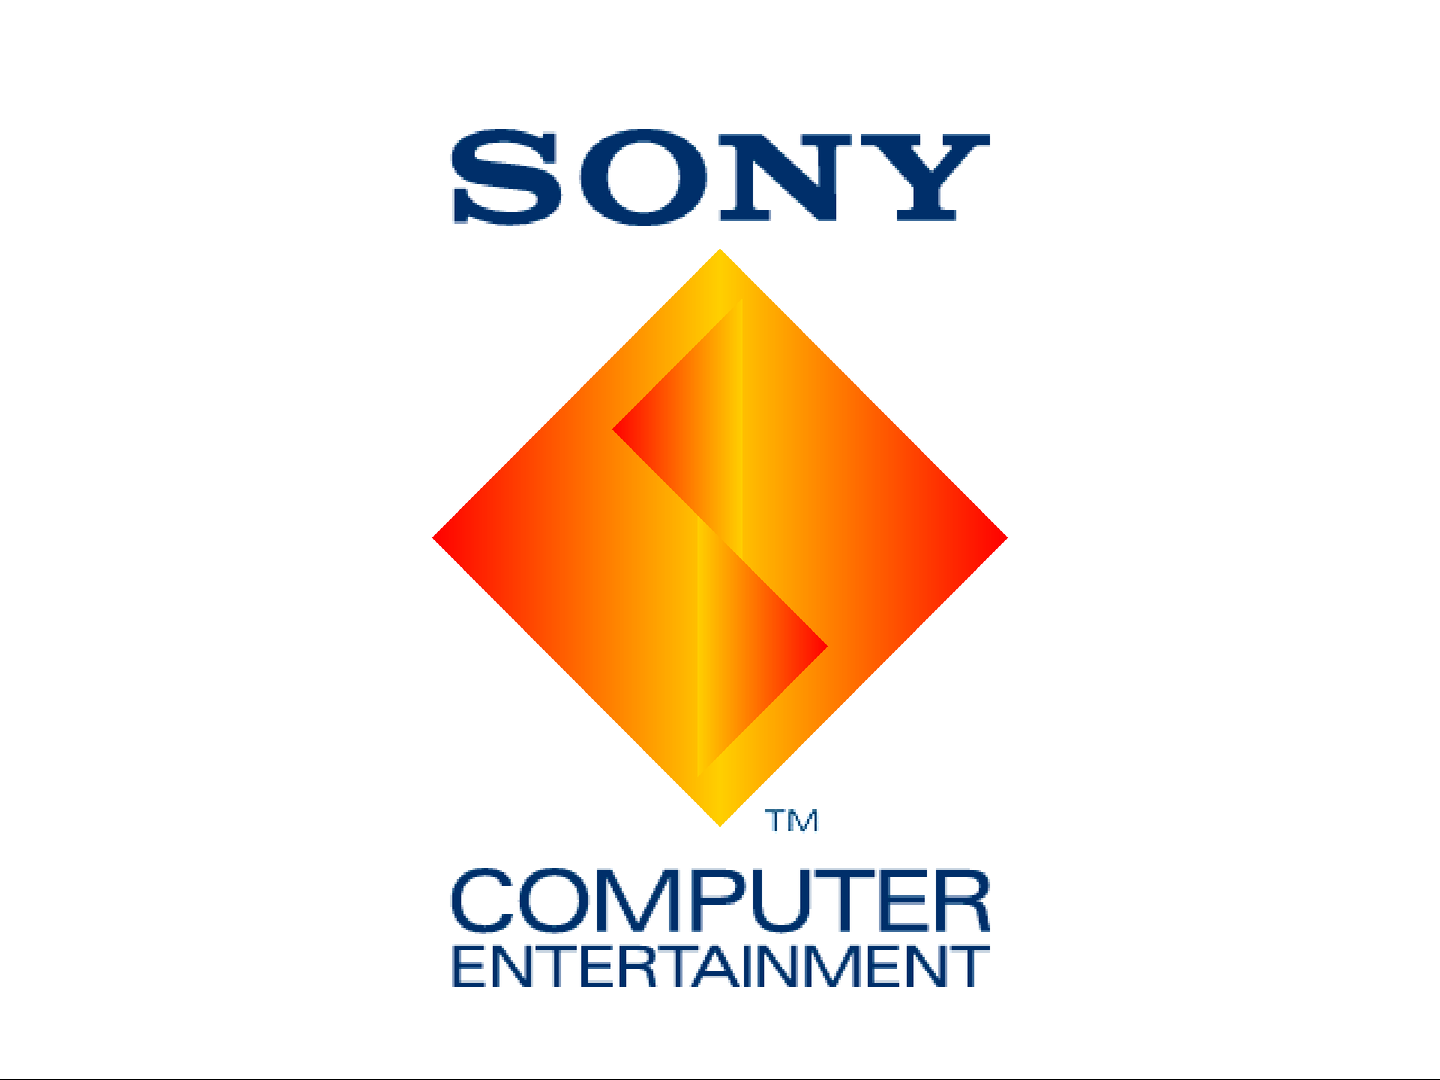 Sony Logo Transparent Png